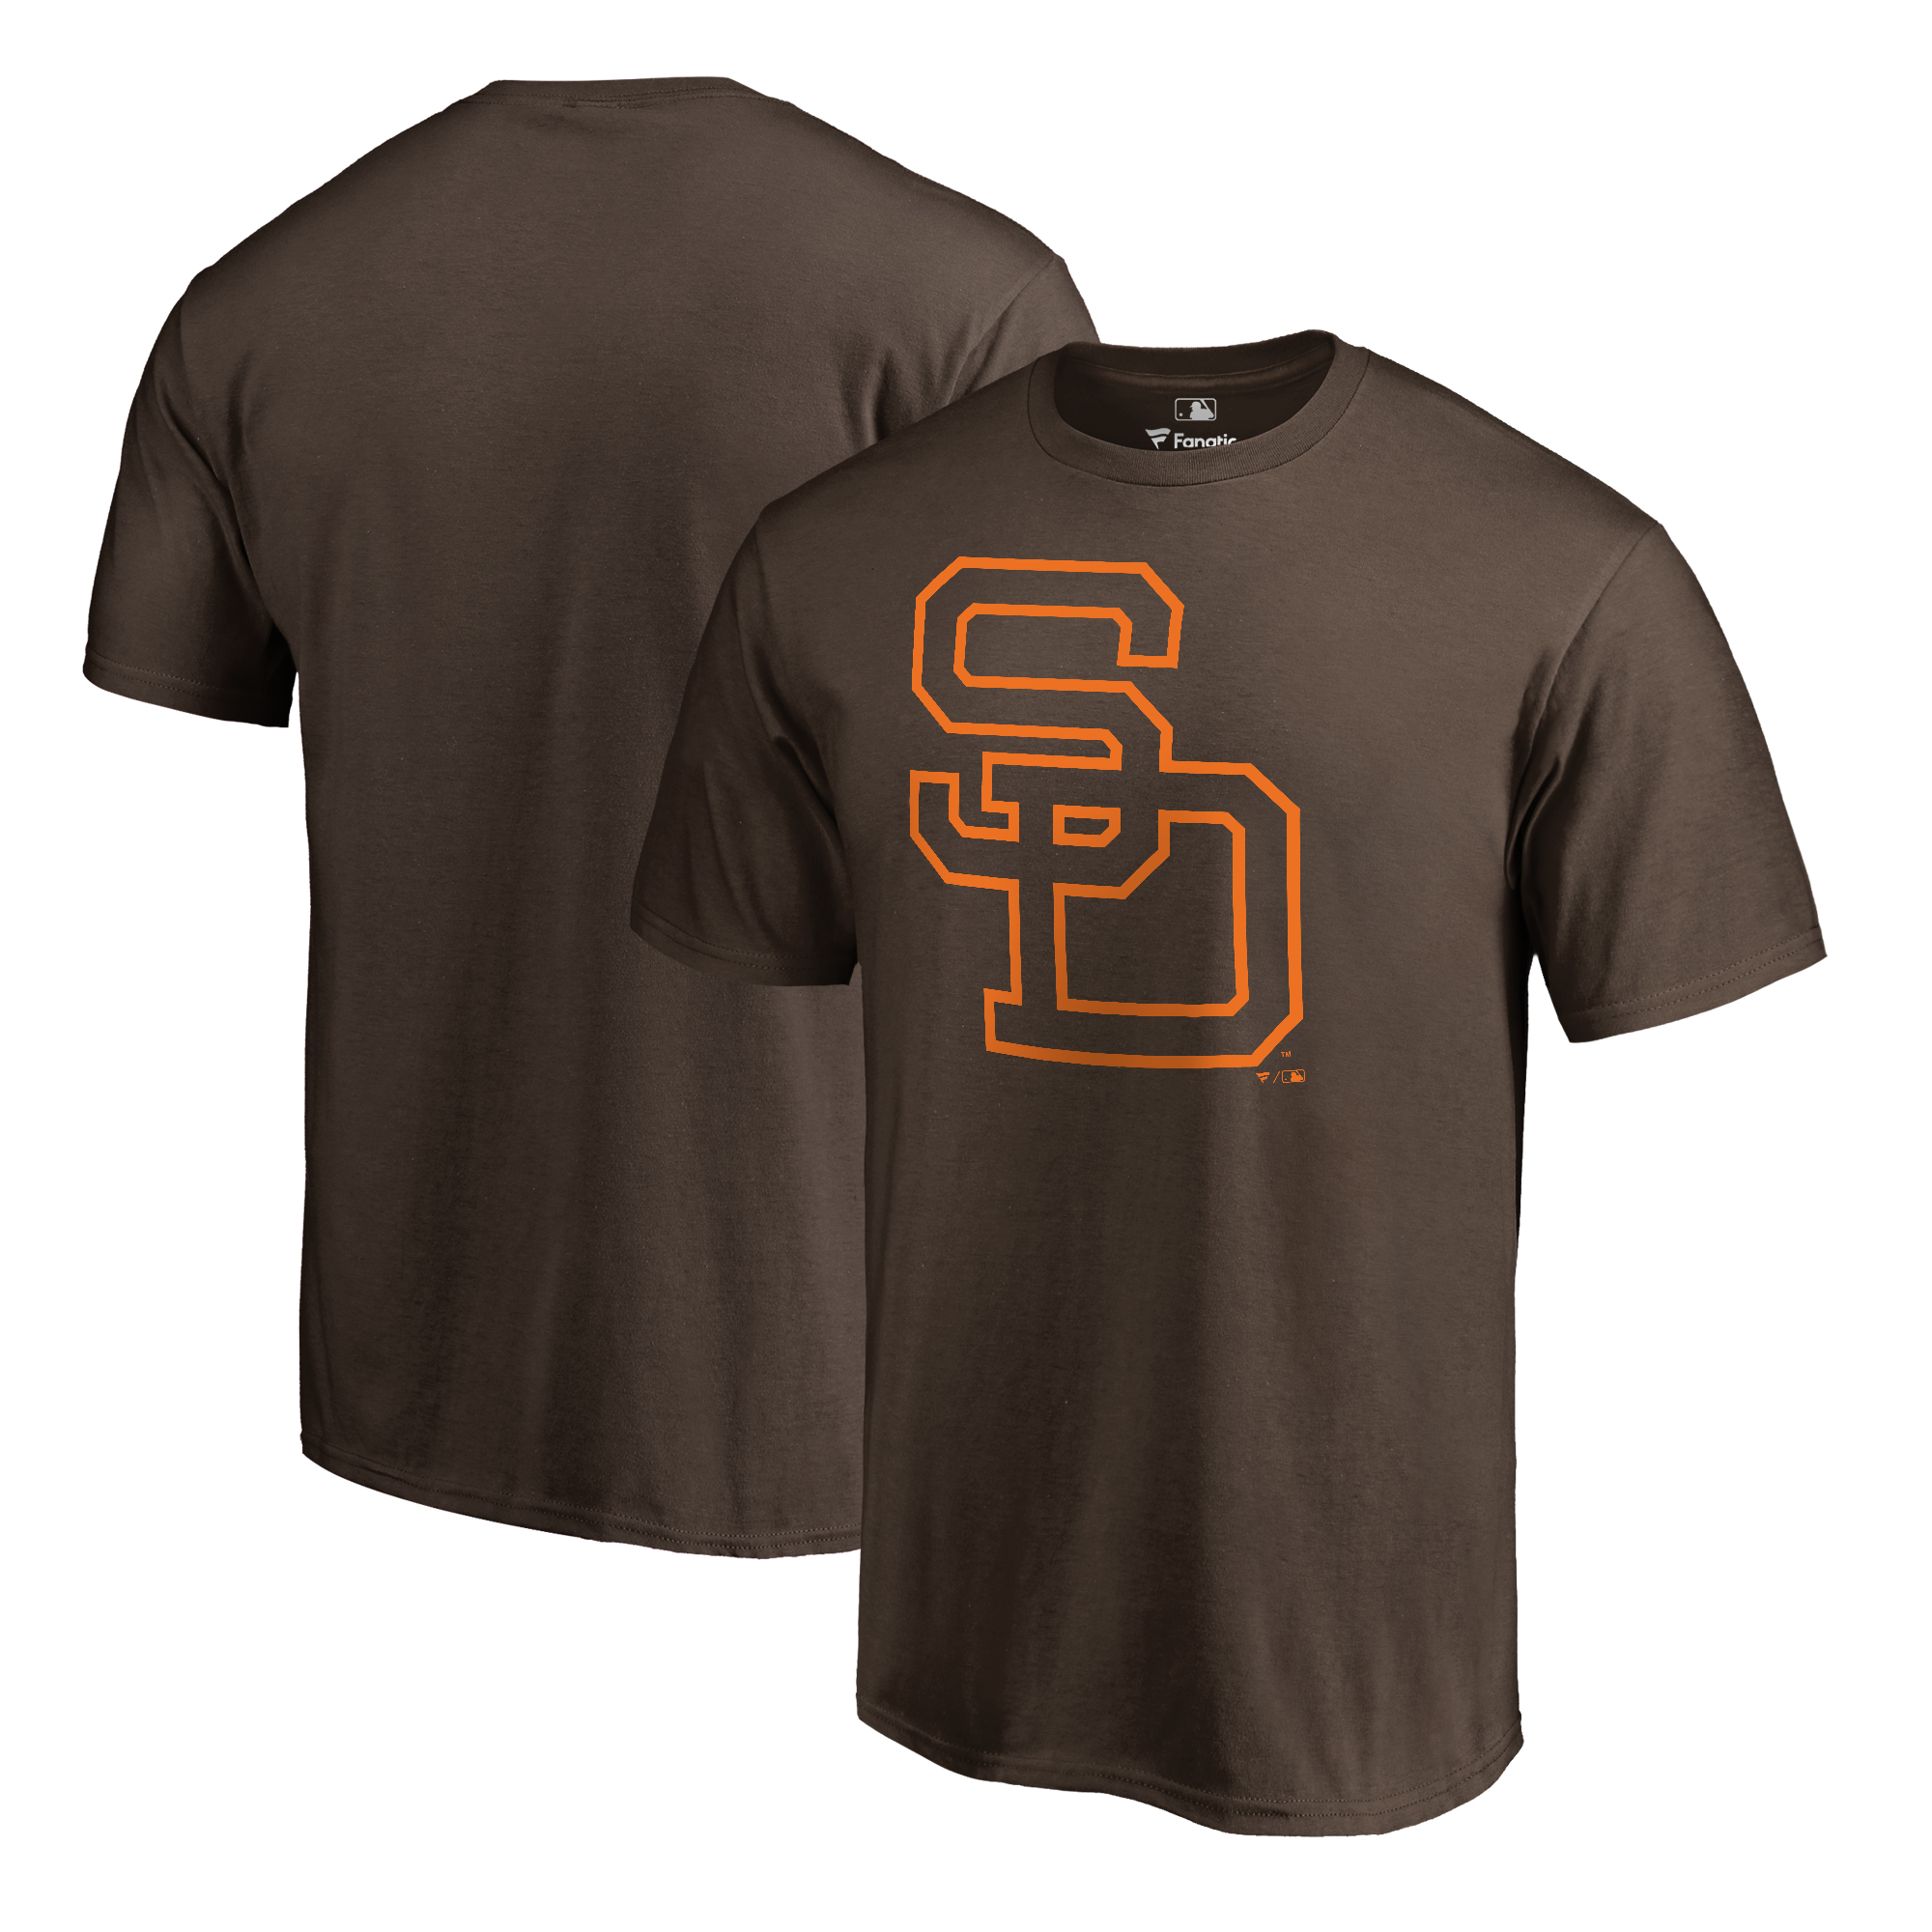 San Diego Padres Fanatics Branded Cooperstown Collection Huntington T-Shirt - Brown